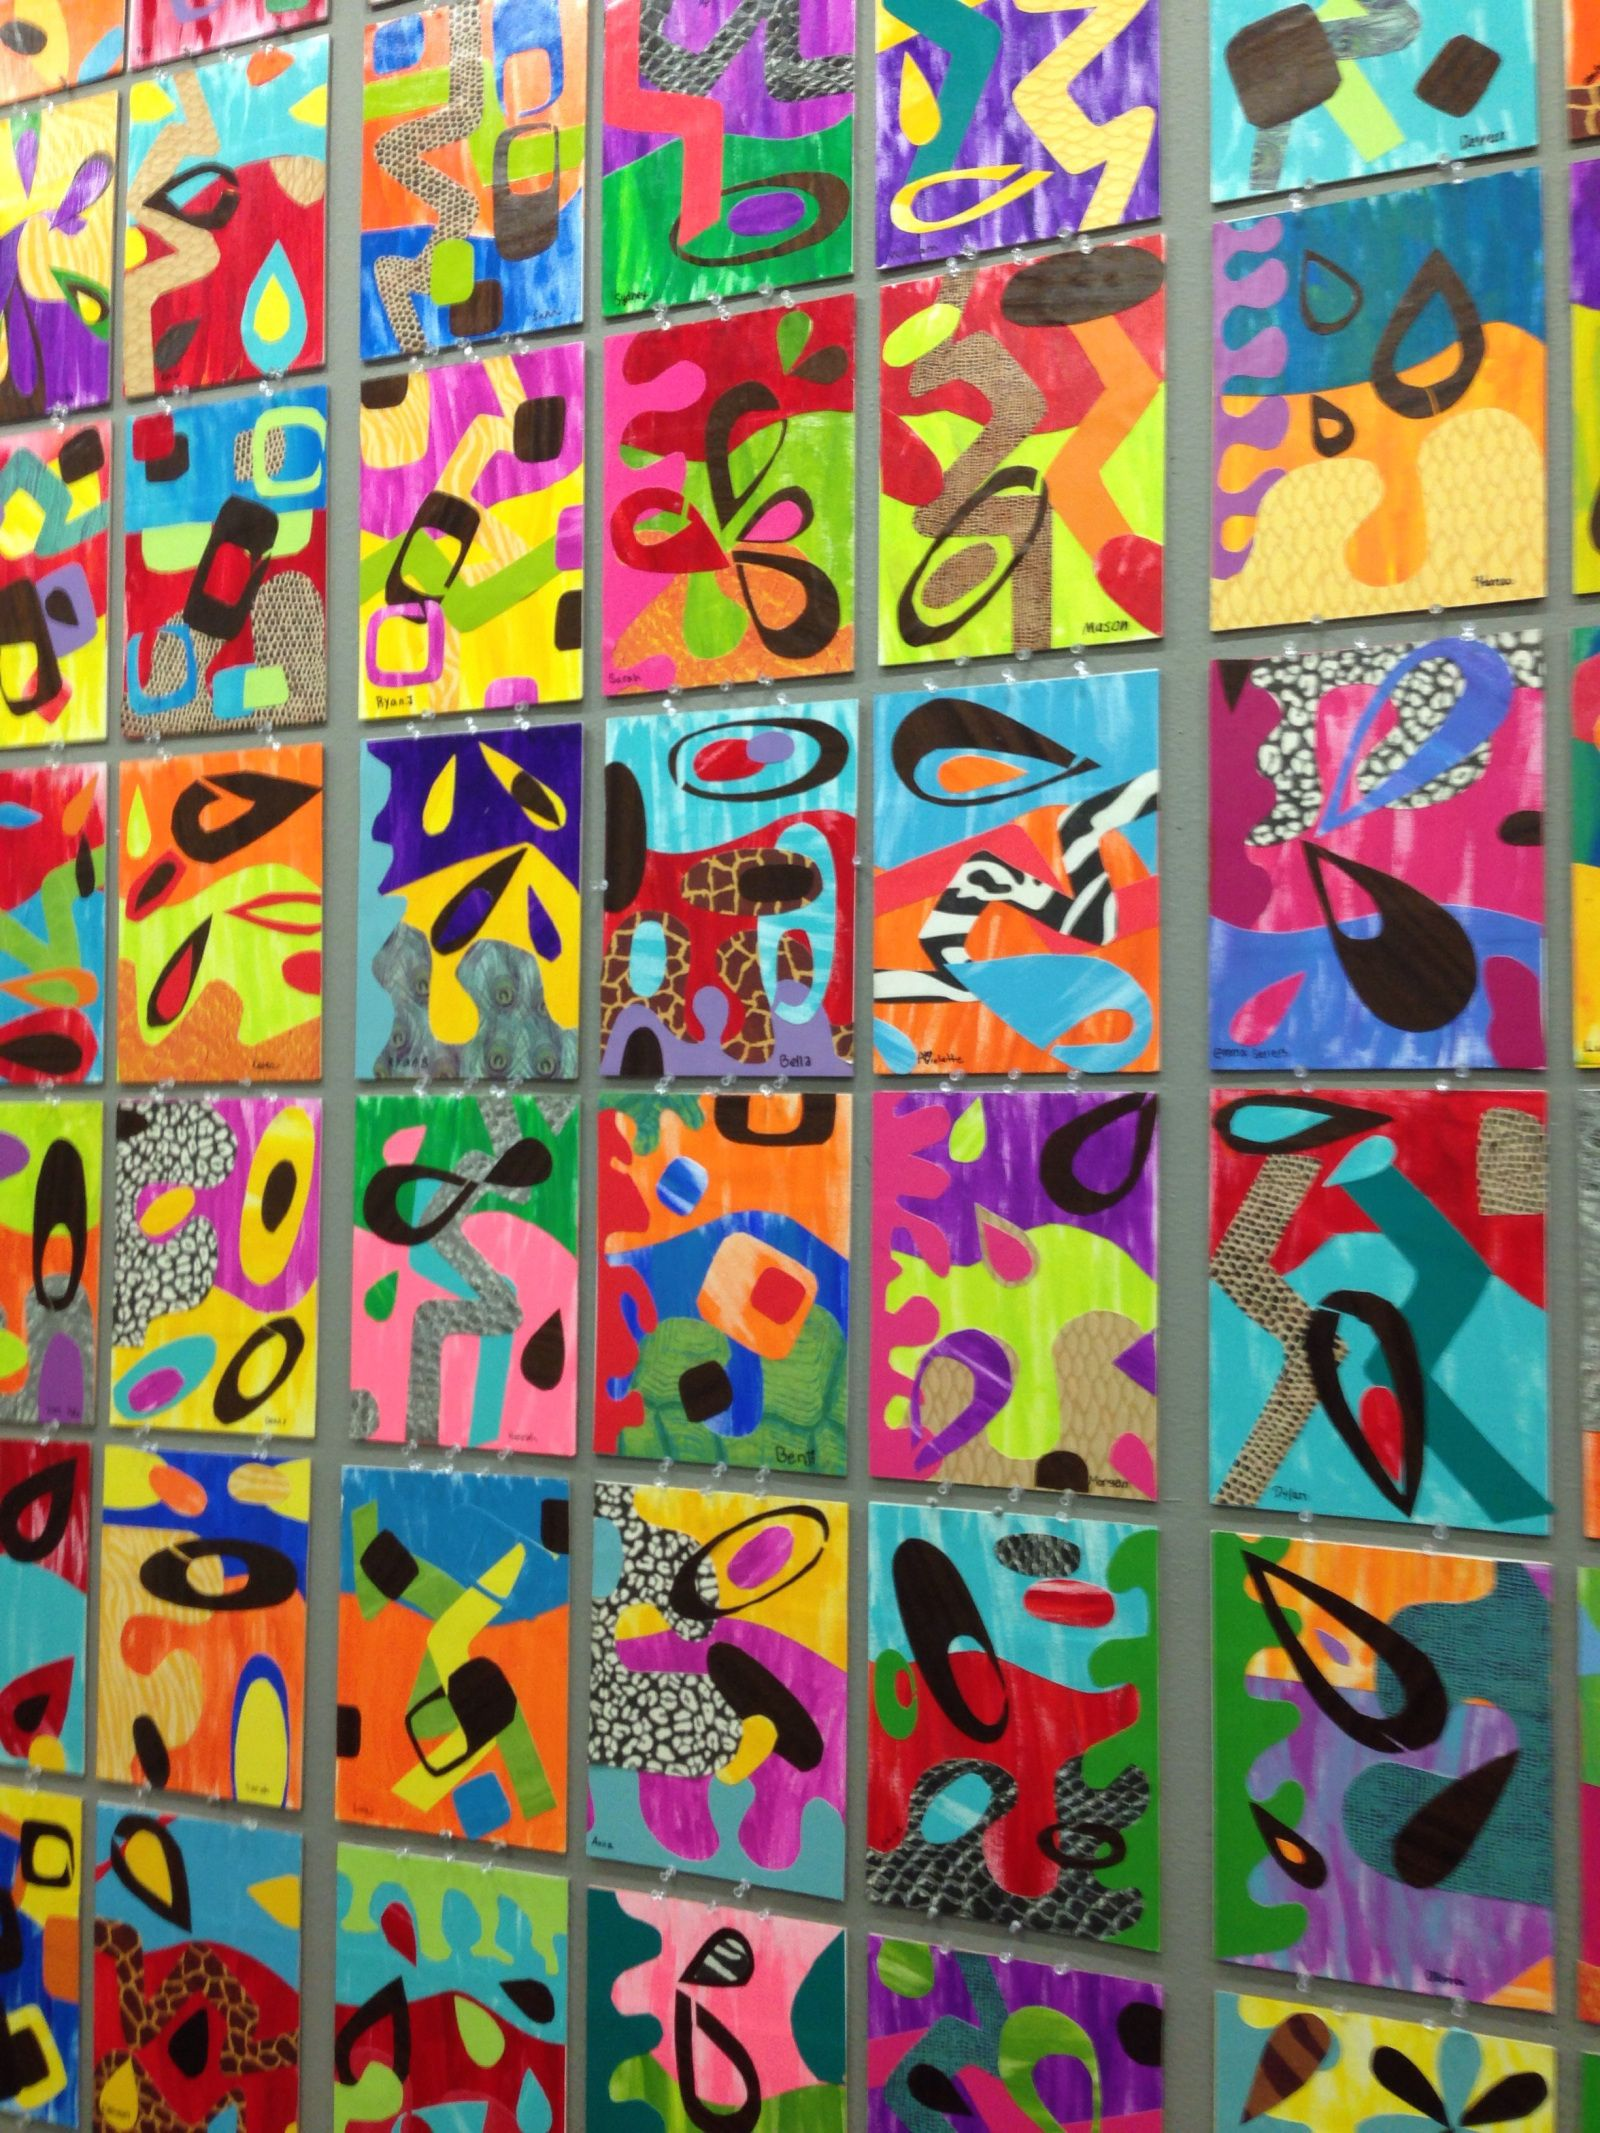 His flowing geometric artworks were a lesson in balance of shape and color students painted their own papers and used wood paper along with